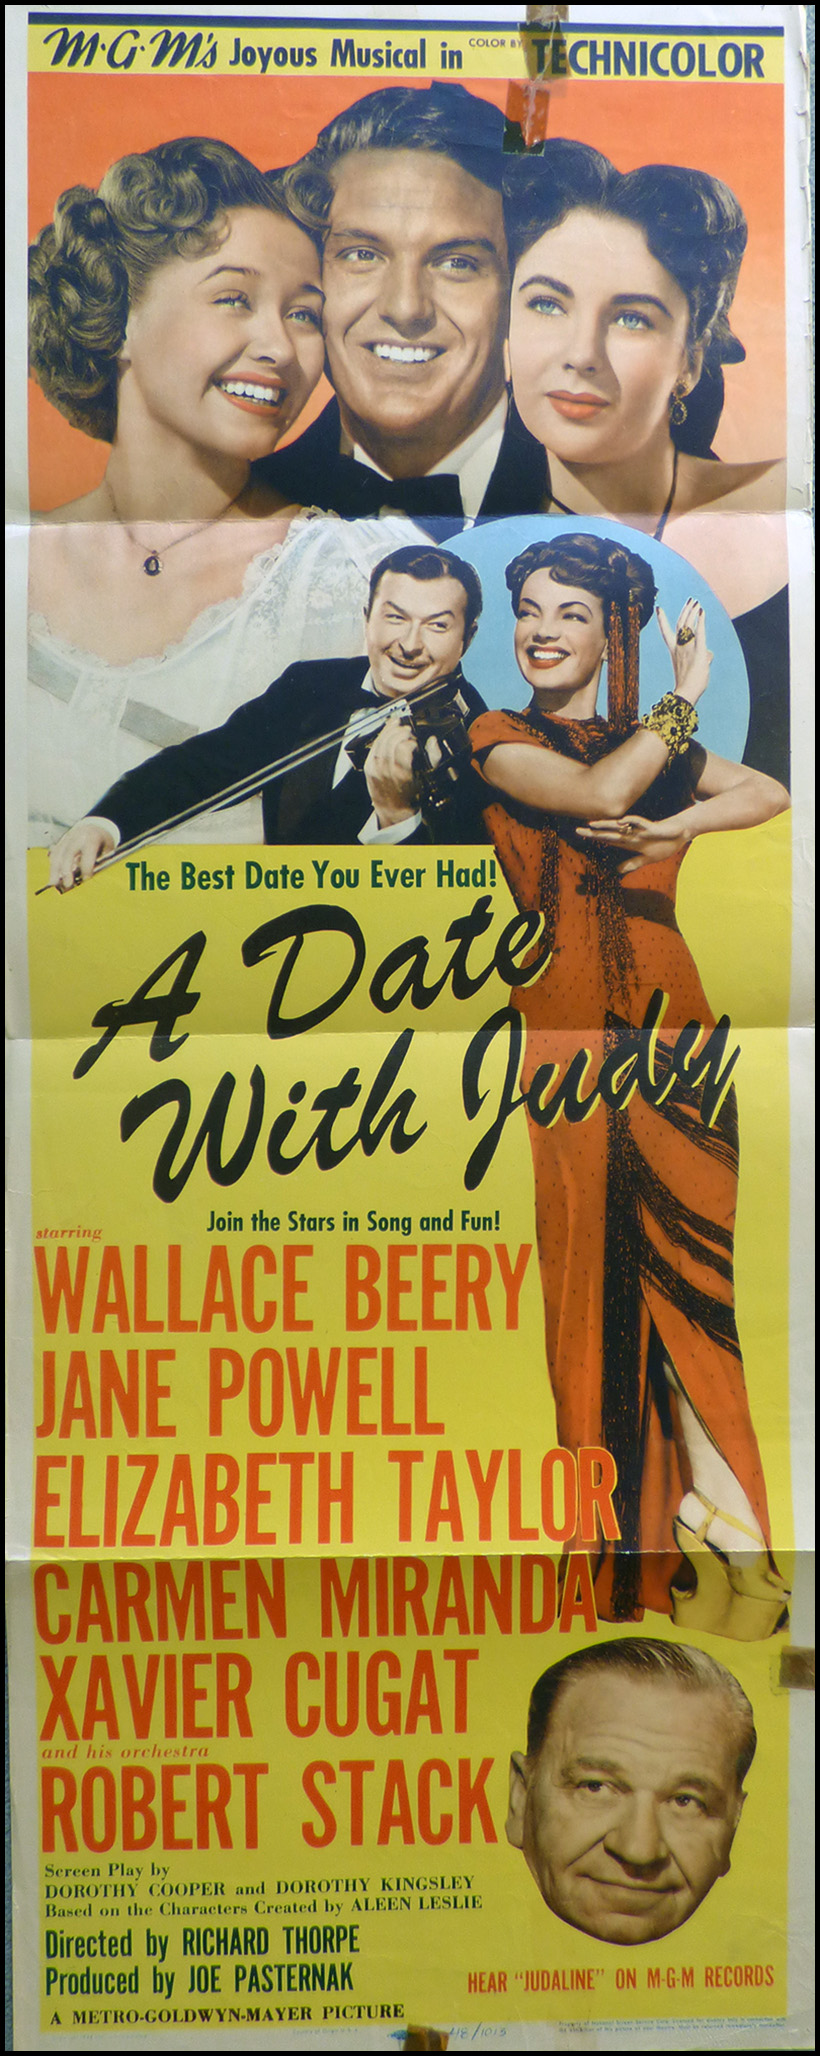 A date with Judy Jane Powell vintage movie poster #1